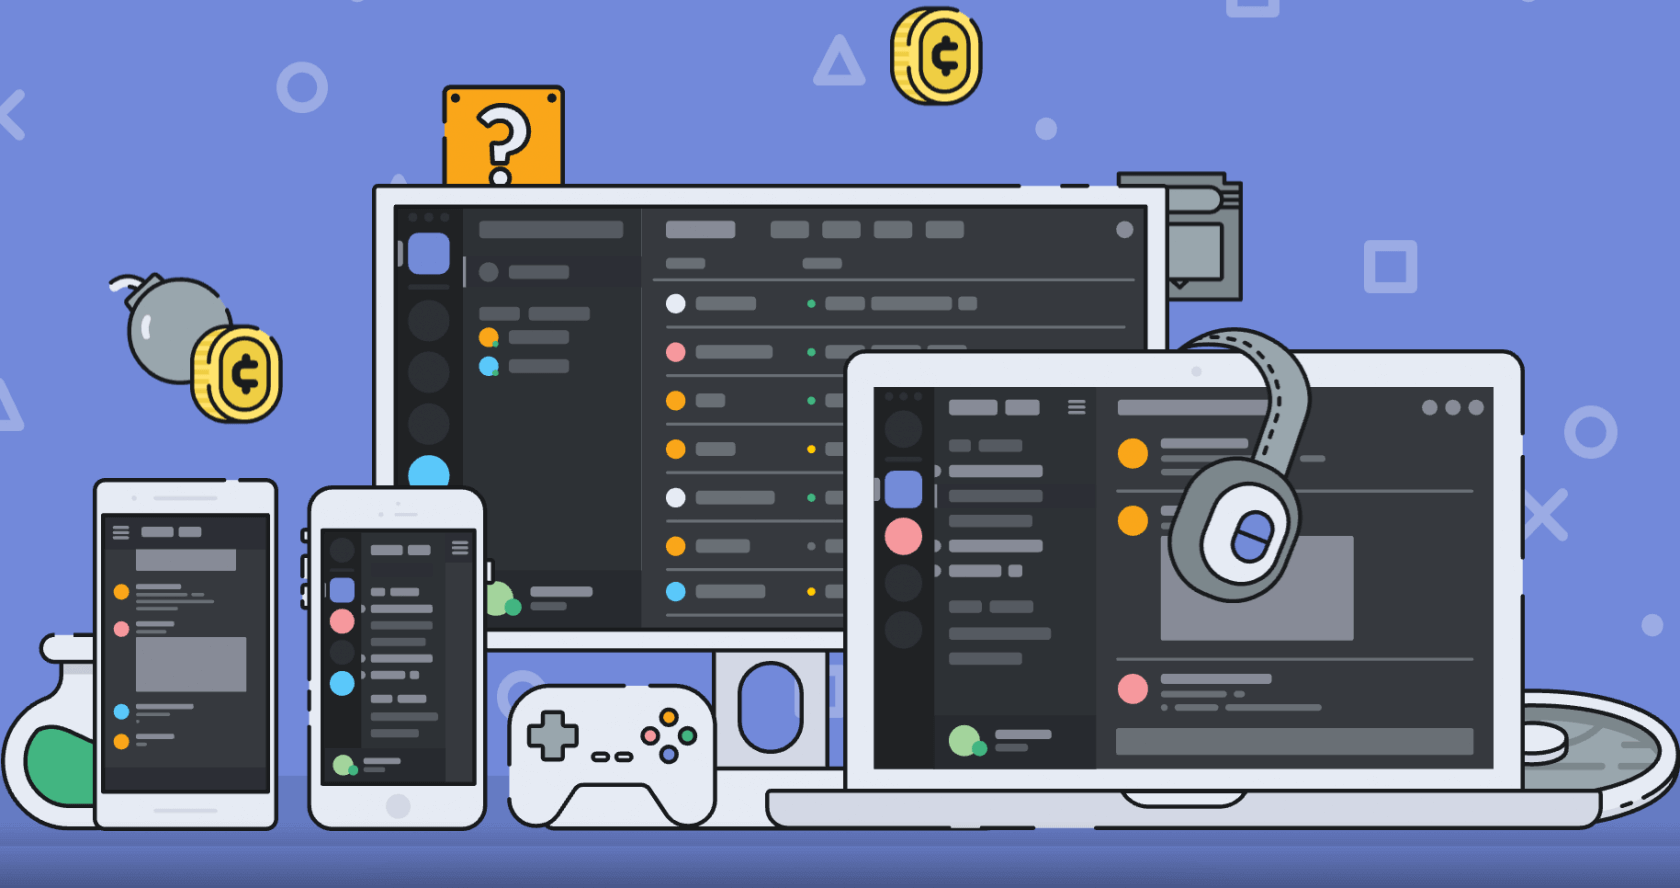 Discord's 'Snowsgiving' event brings a $26,000 game tournament, hardware giveaways, and more